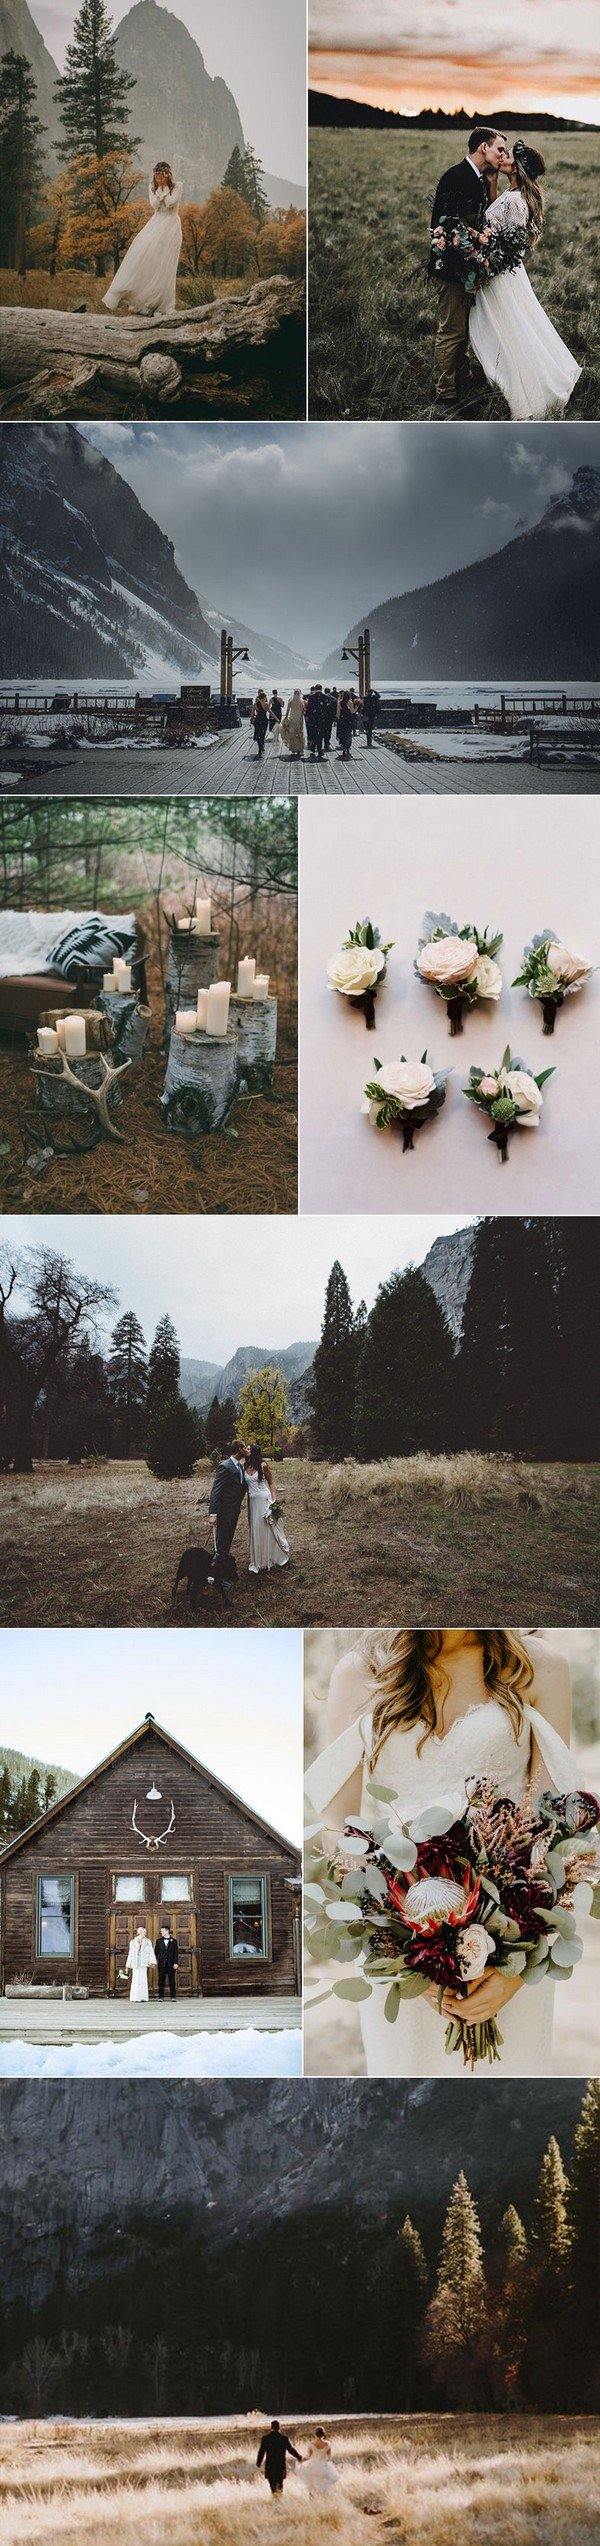 rustic mountain side wedding ideas